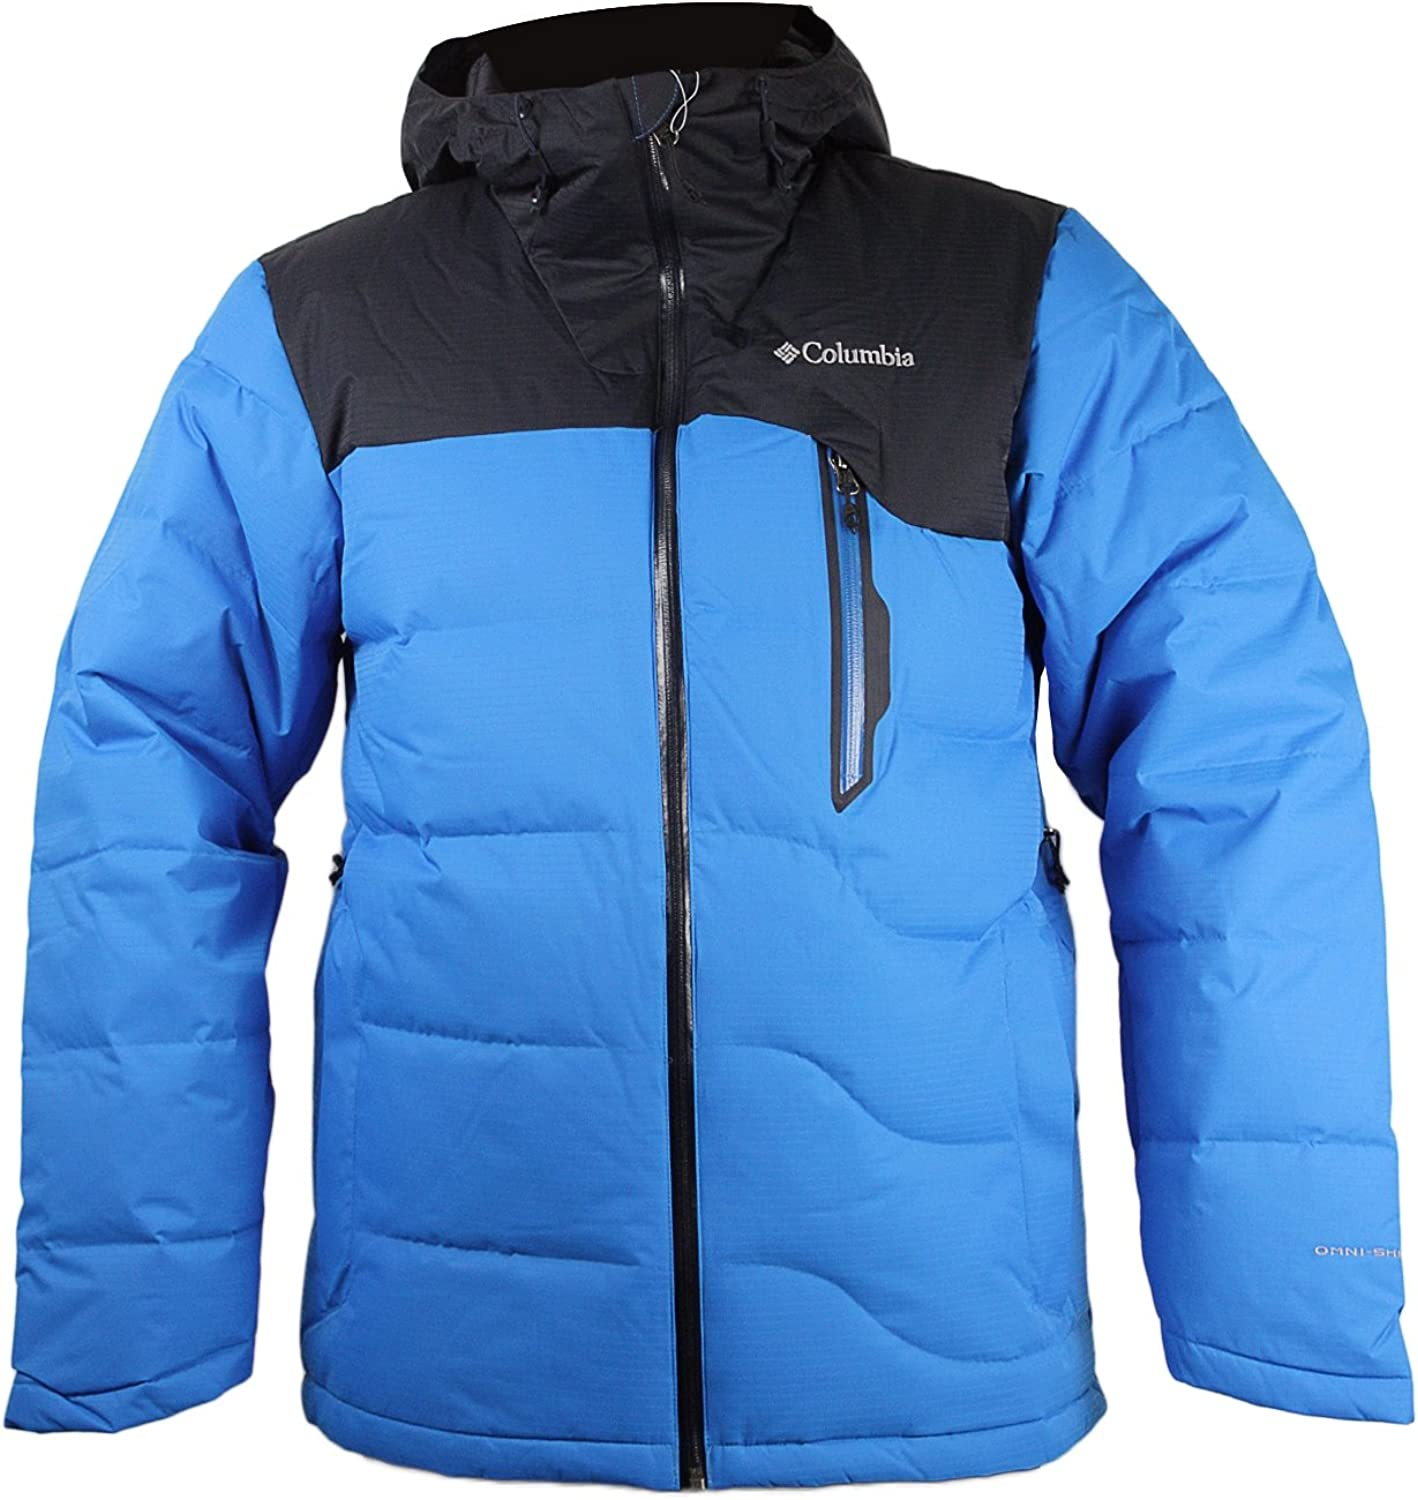 Columbia Men's Powder Down Jacket : Clothing, Shoes & Jewelry